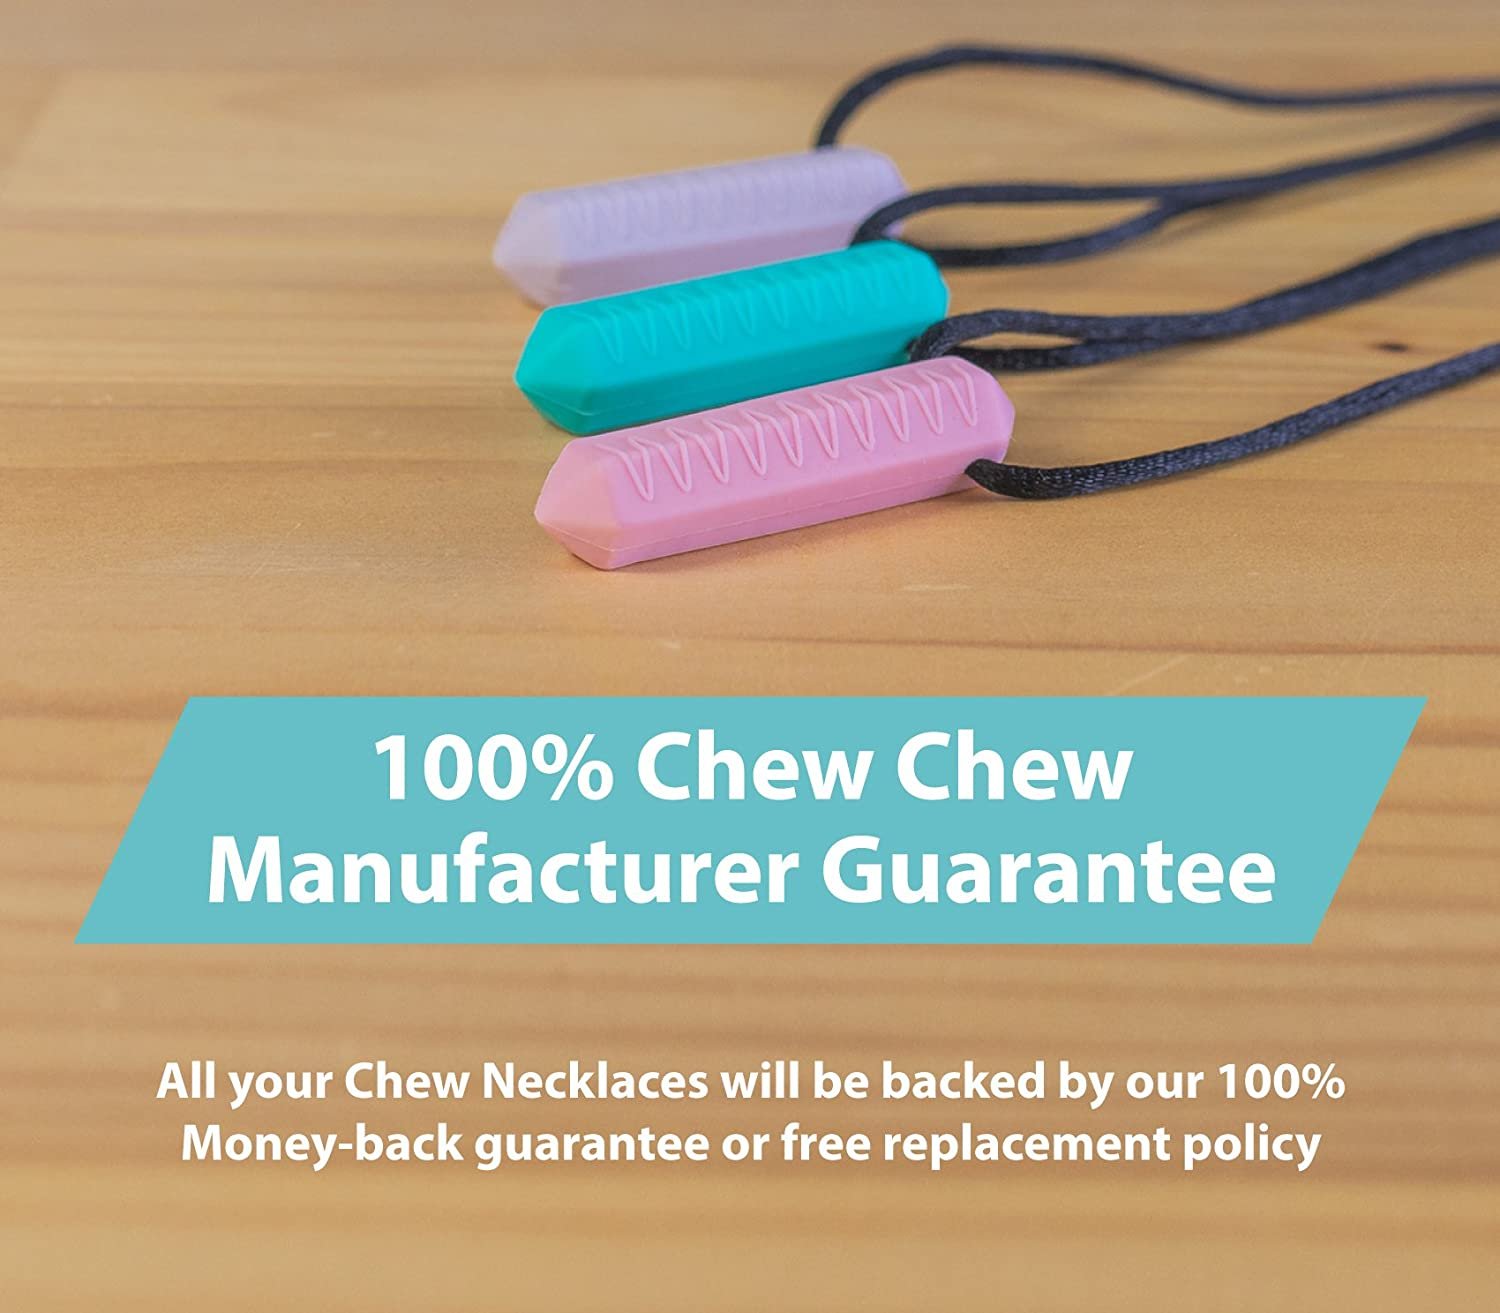 Biting and Teething Kids Chewlery Necklaces Perfectly Textured Silicone Chewy Toy Best for Autism Tilcare Chew Chew Crayon Sensory Teether Necklace Pack Chewing Pendant for Boys /& Girls